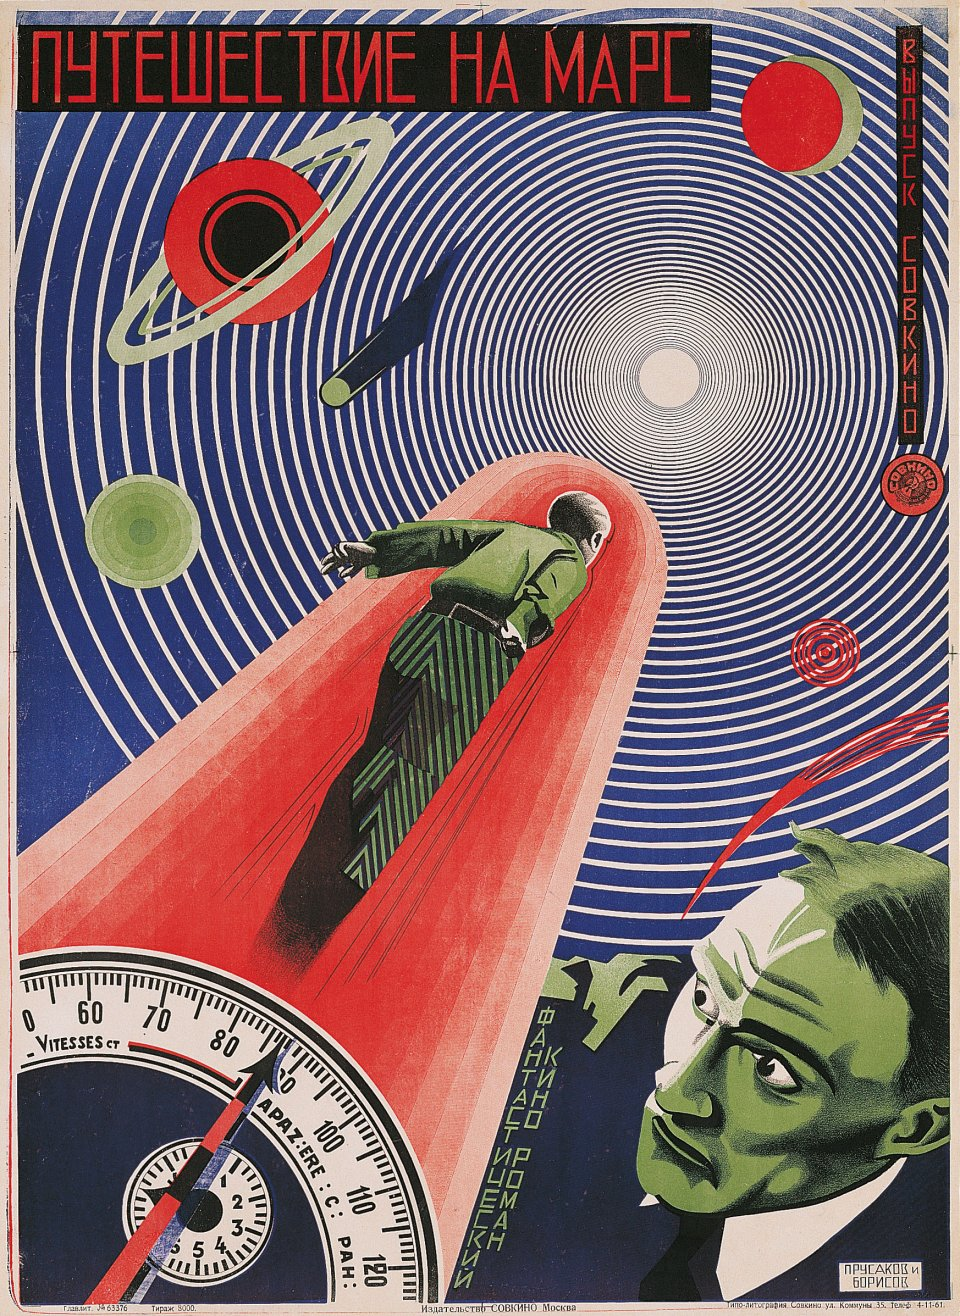 Copyright: © TASCHEN / Susan Pack, California | Seite 261 | Nikolai Prusakov and Grigori Borisov, Film poster for Puteshestvie na Mars, c. 1926